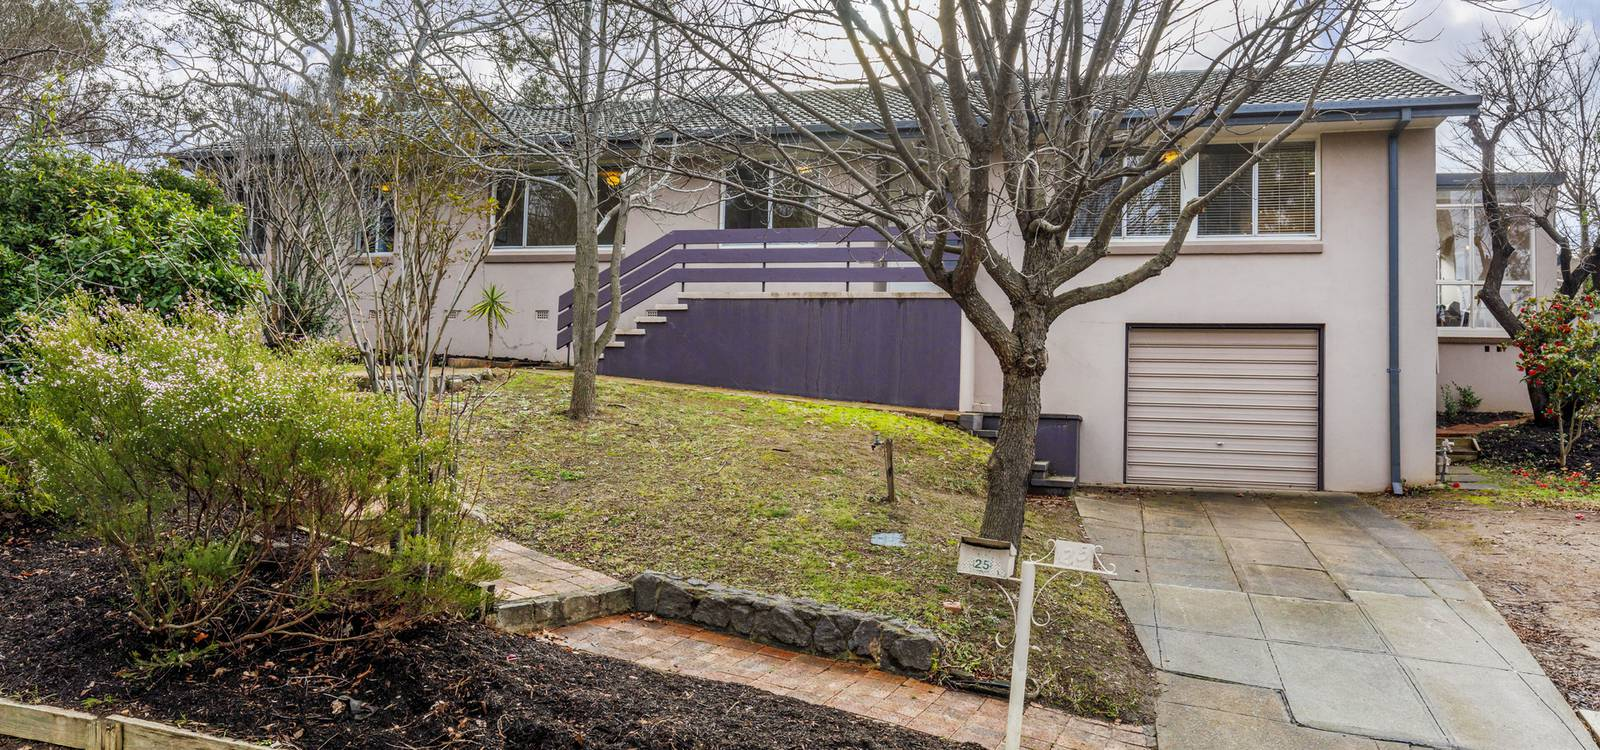 25 Collings Street PEARCE, ACT 2607 - photo 1